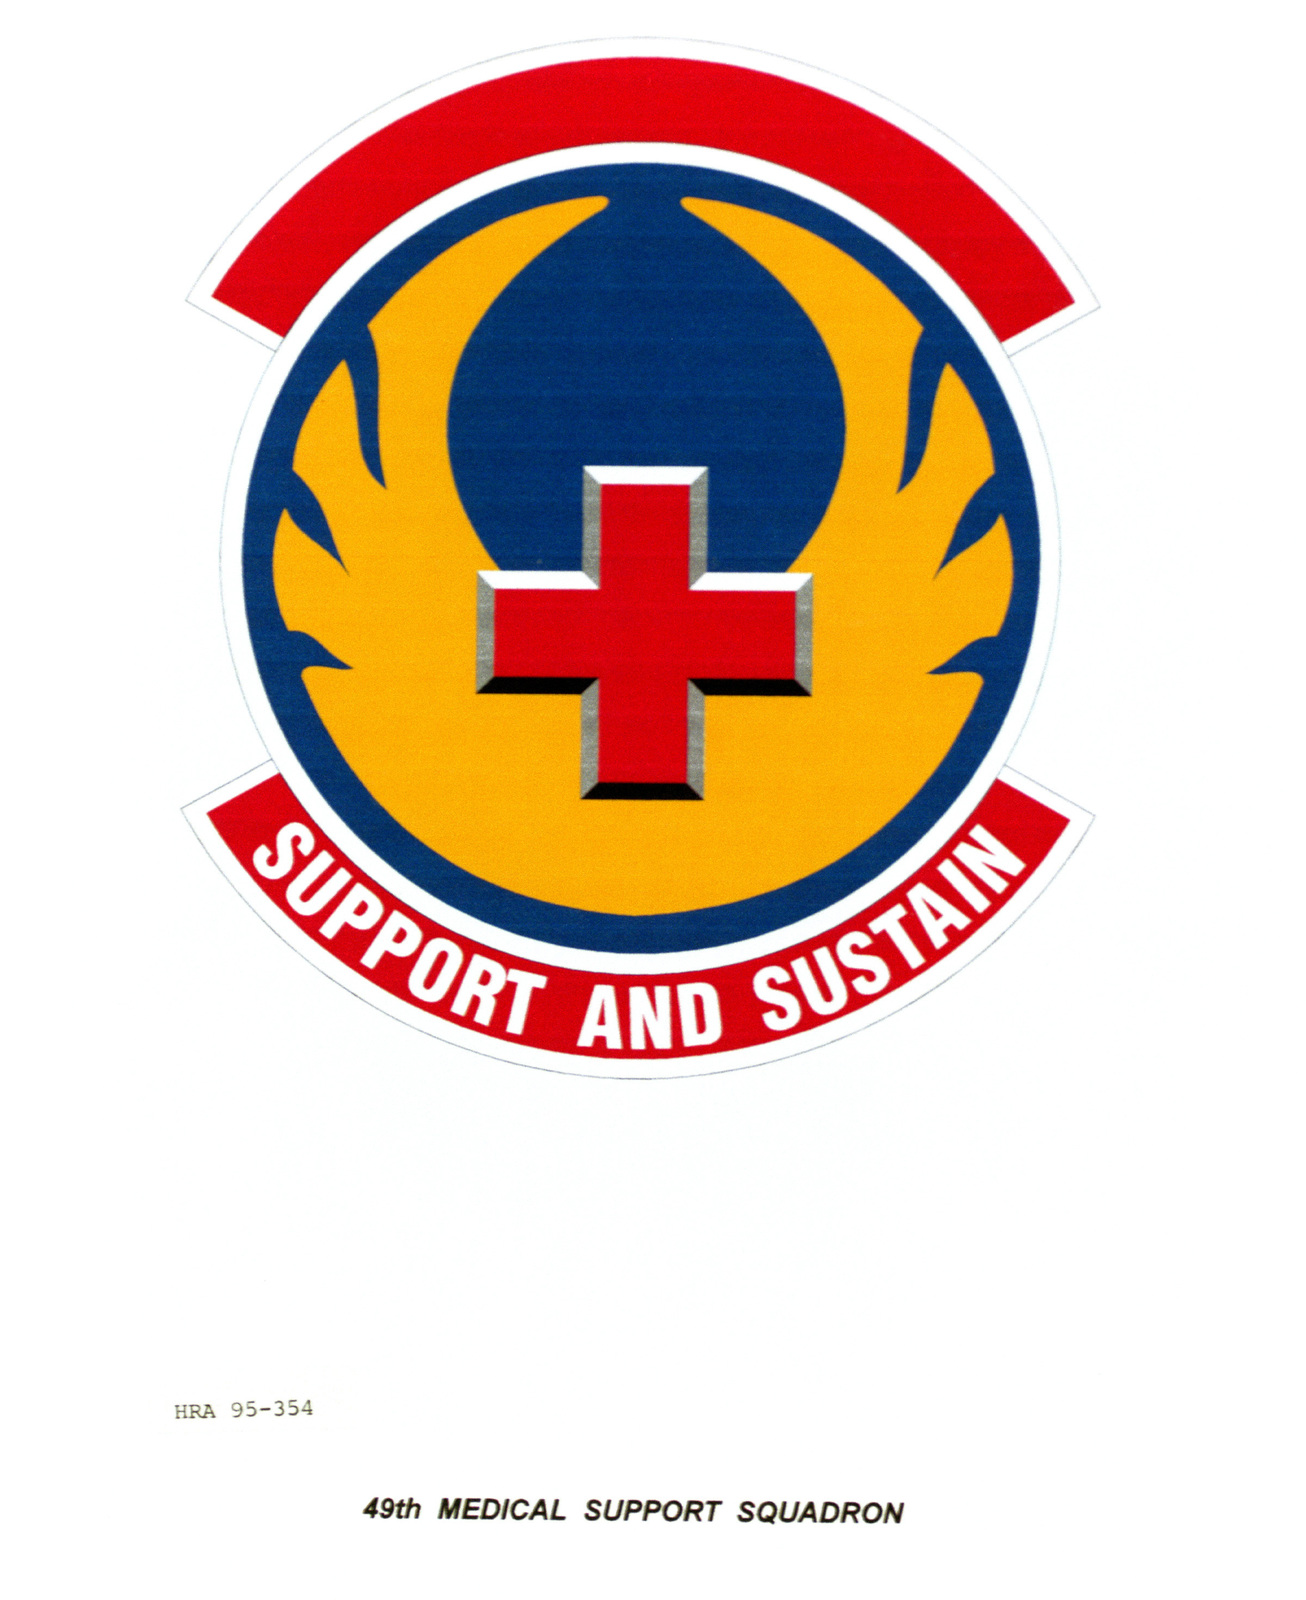 Approved Insignia for the 49th Medical Support Squadron Exact Date Shot Unknown